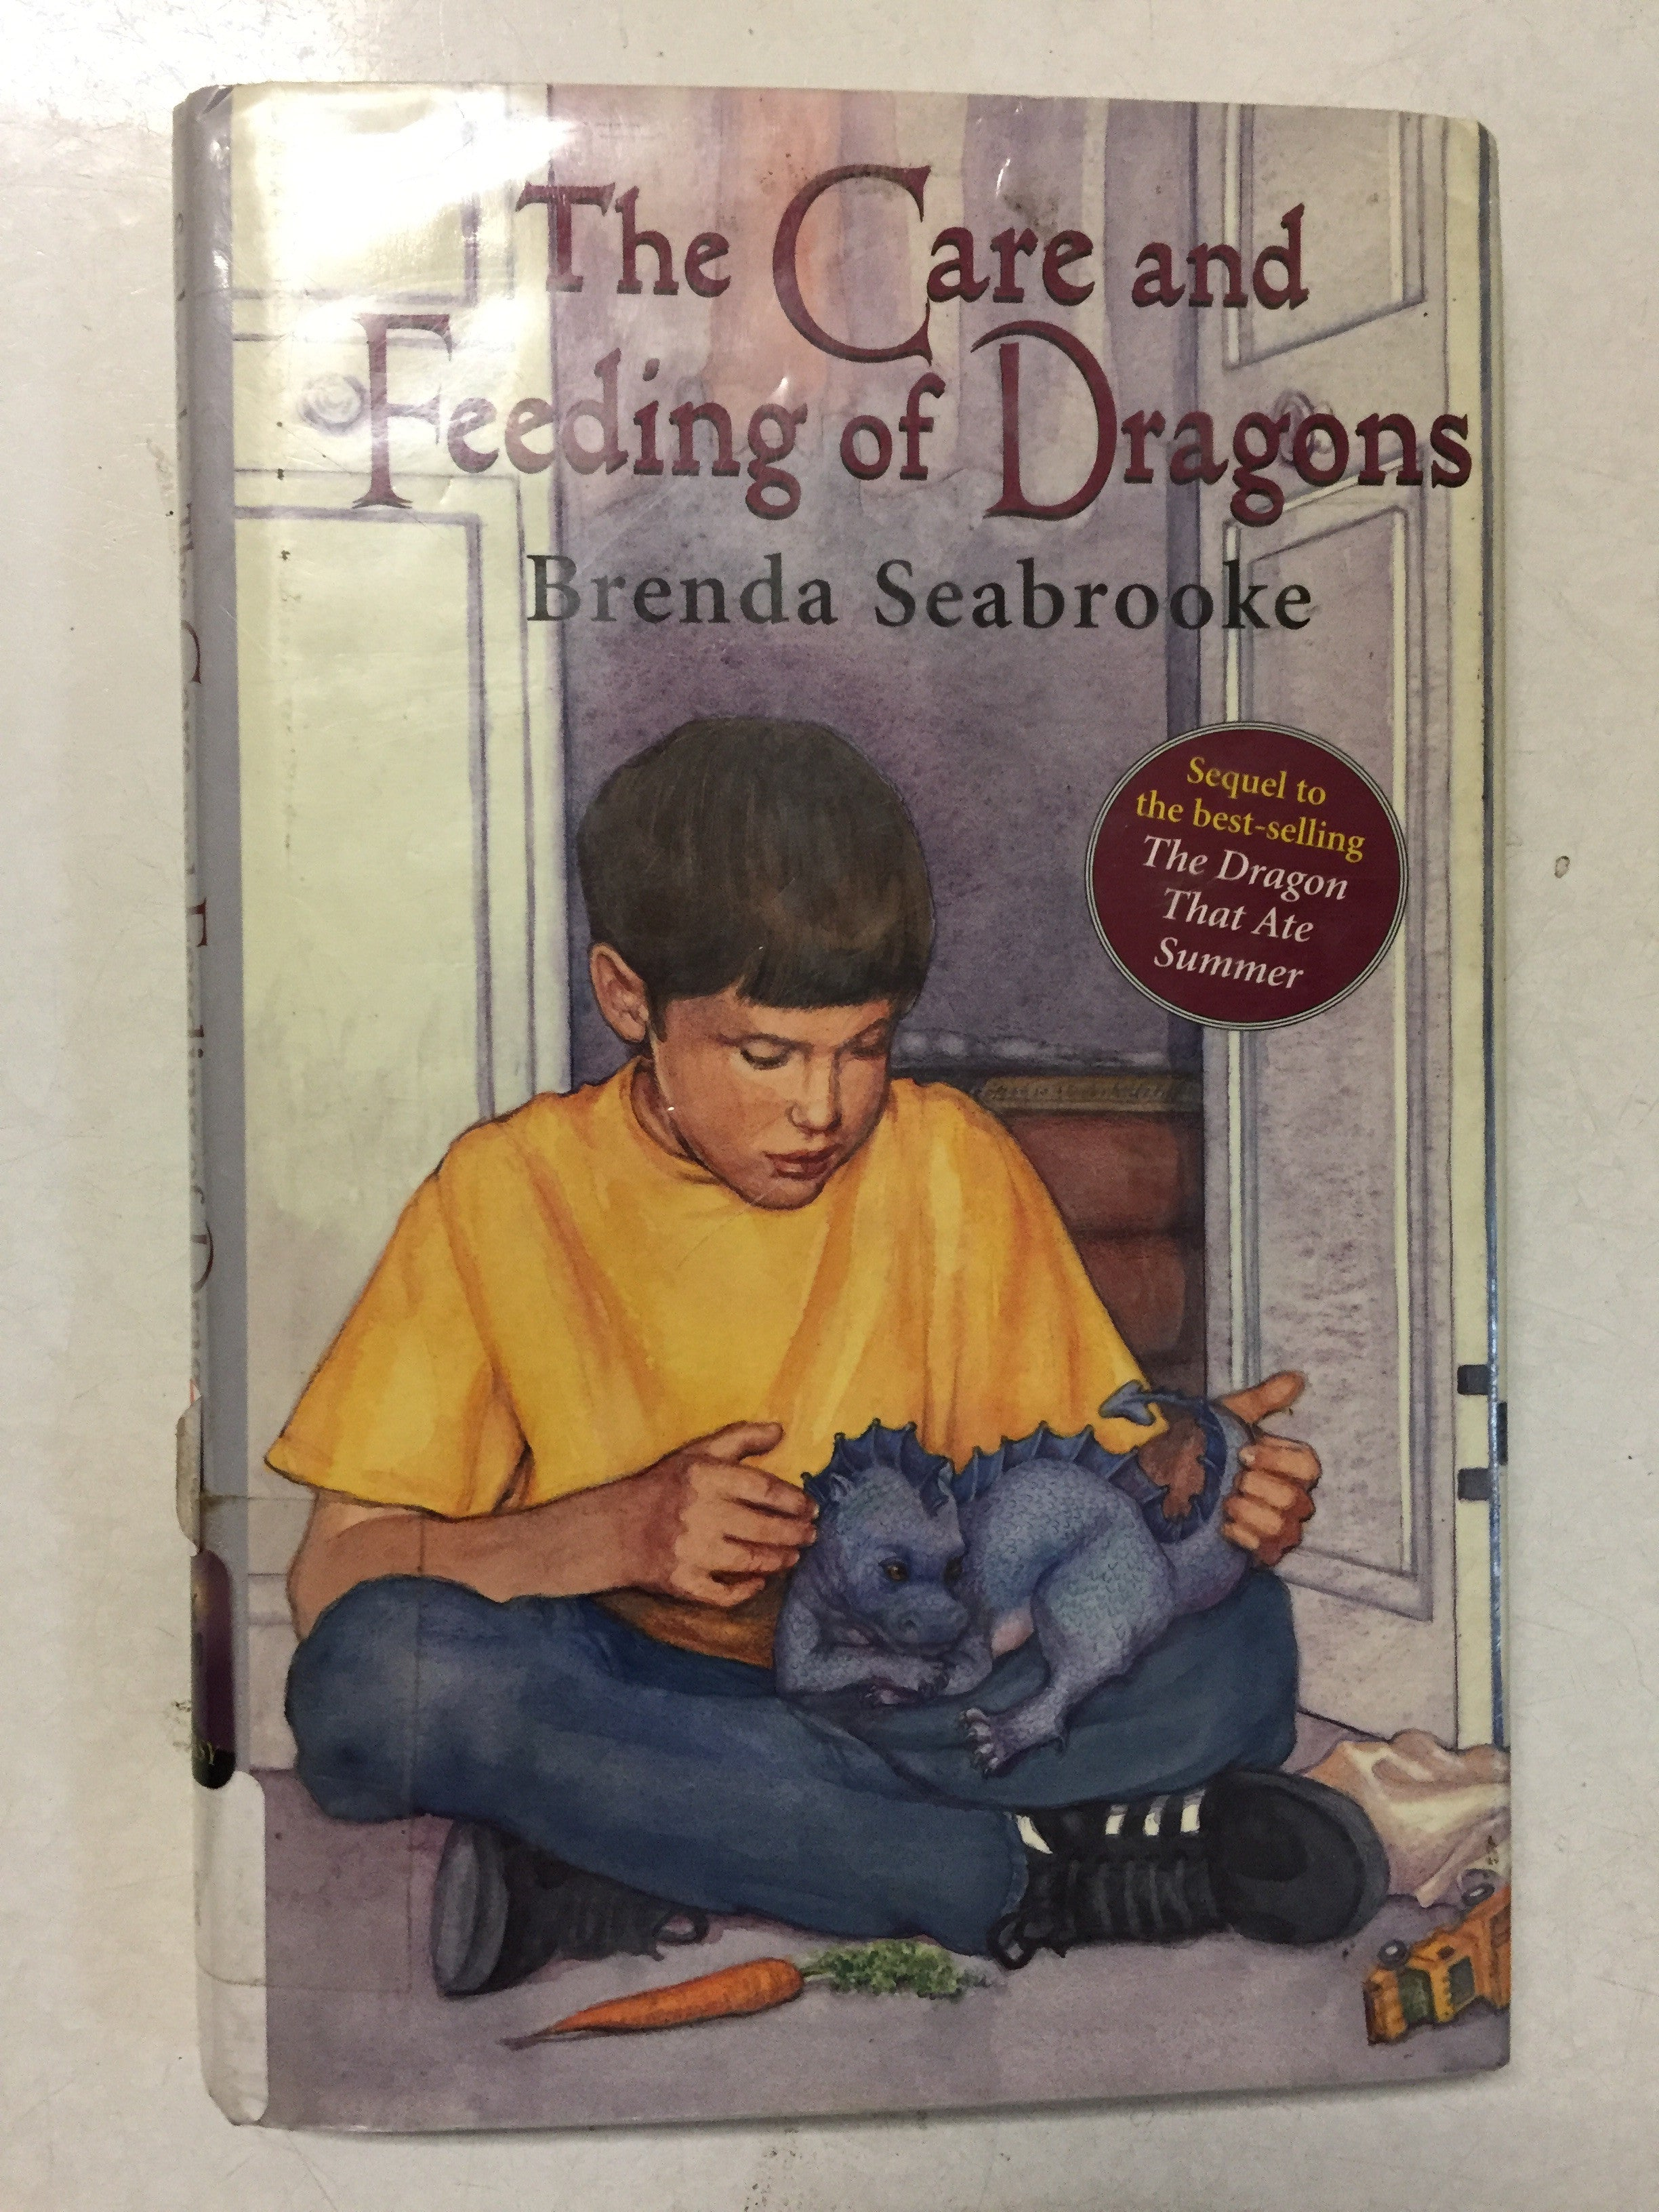 The Care and Feeding of Dragons - Slickcatbooks